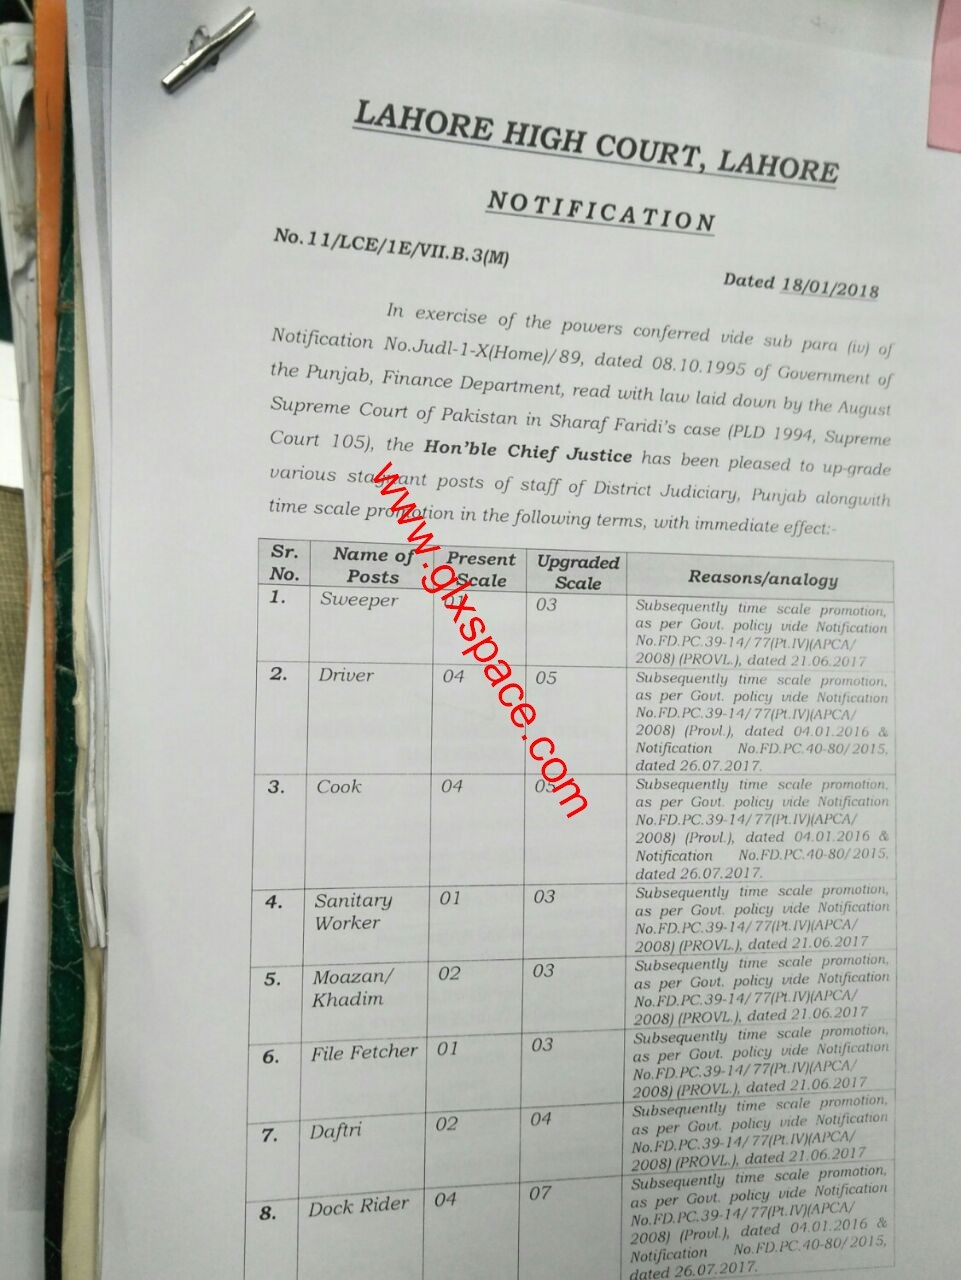 Notification of Upgradation of Various Stagnant Posts of District Judiciary